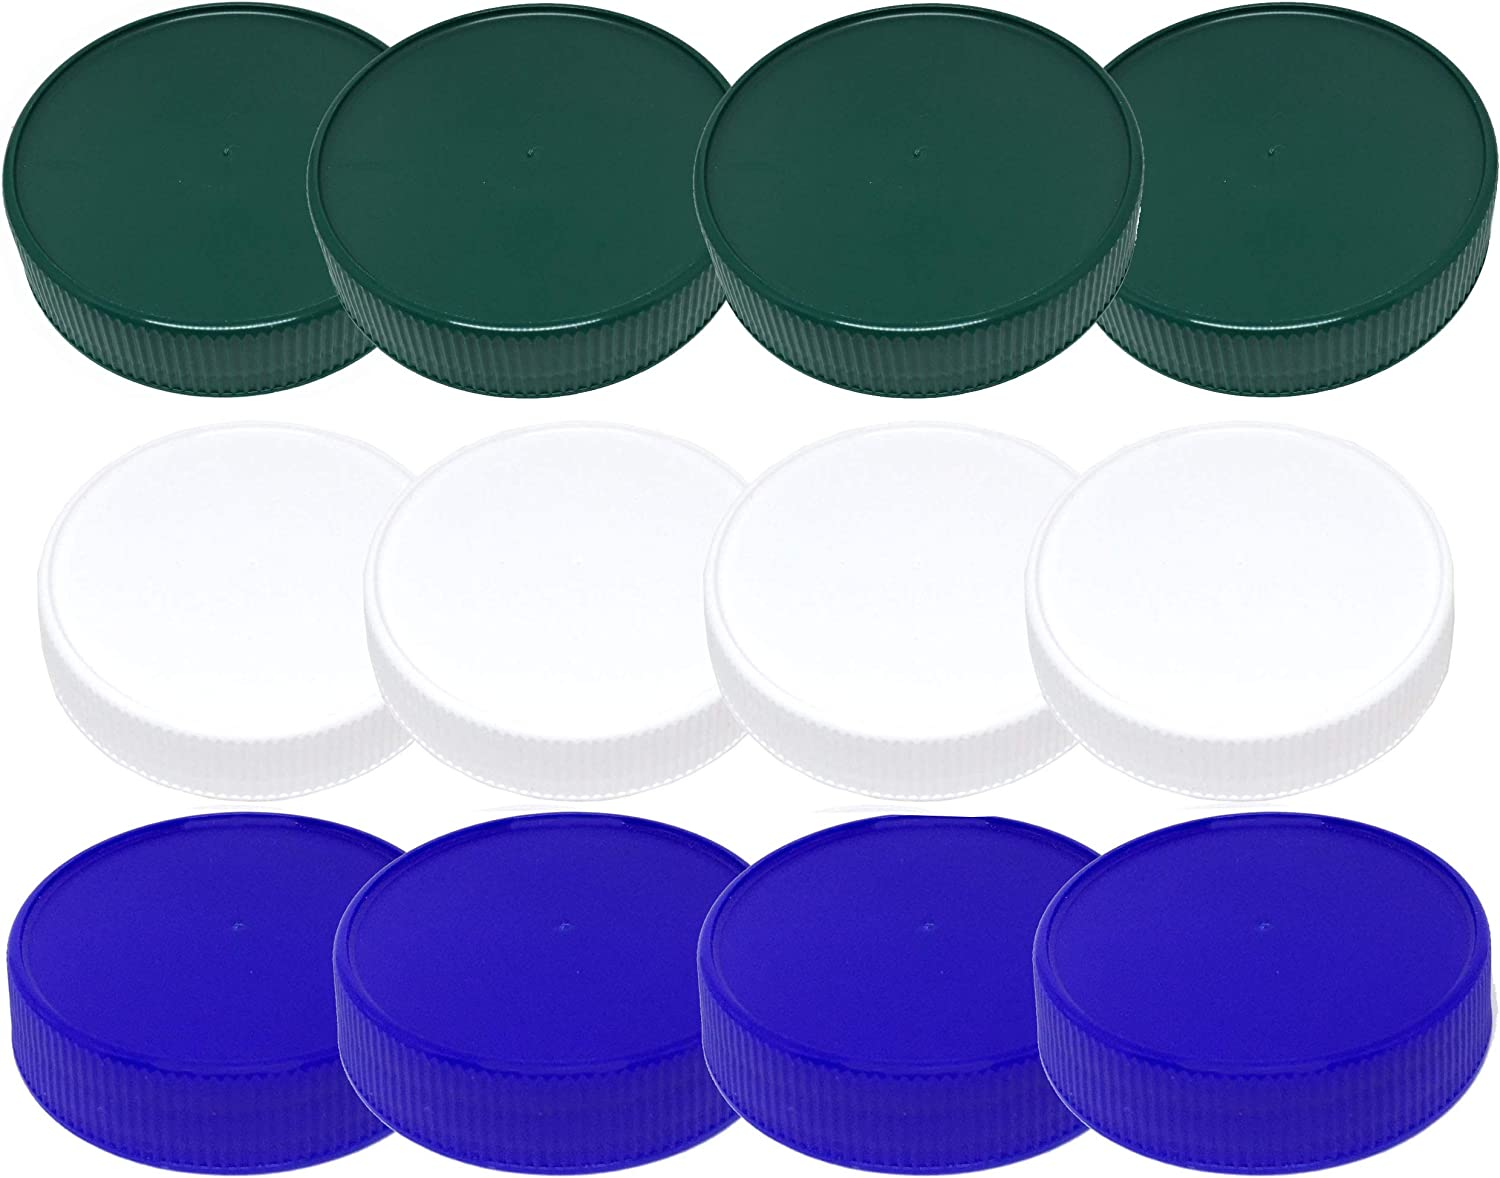 green BPA Free Plastic Mason Jar Lids - by Jarming Collections Regular Mouth Mason Jar Lids Set of 12 Reusable Leak Proof Caps are Made in the USA